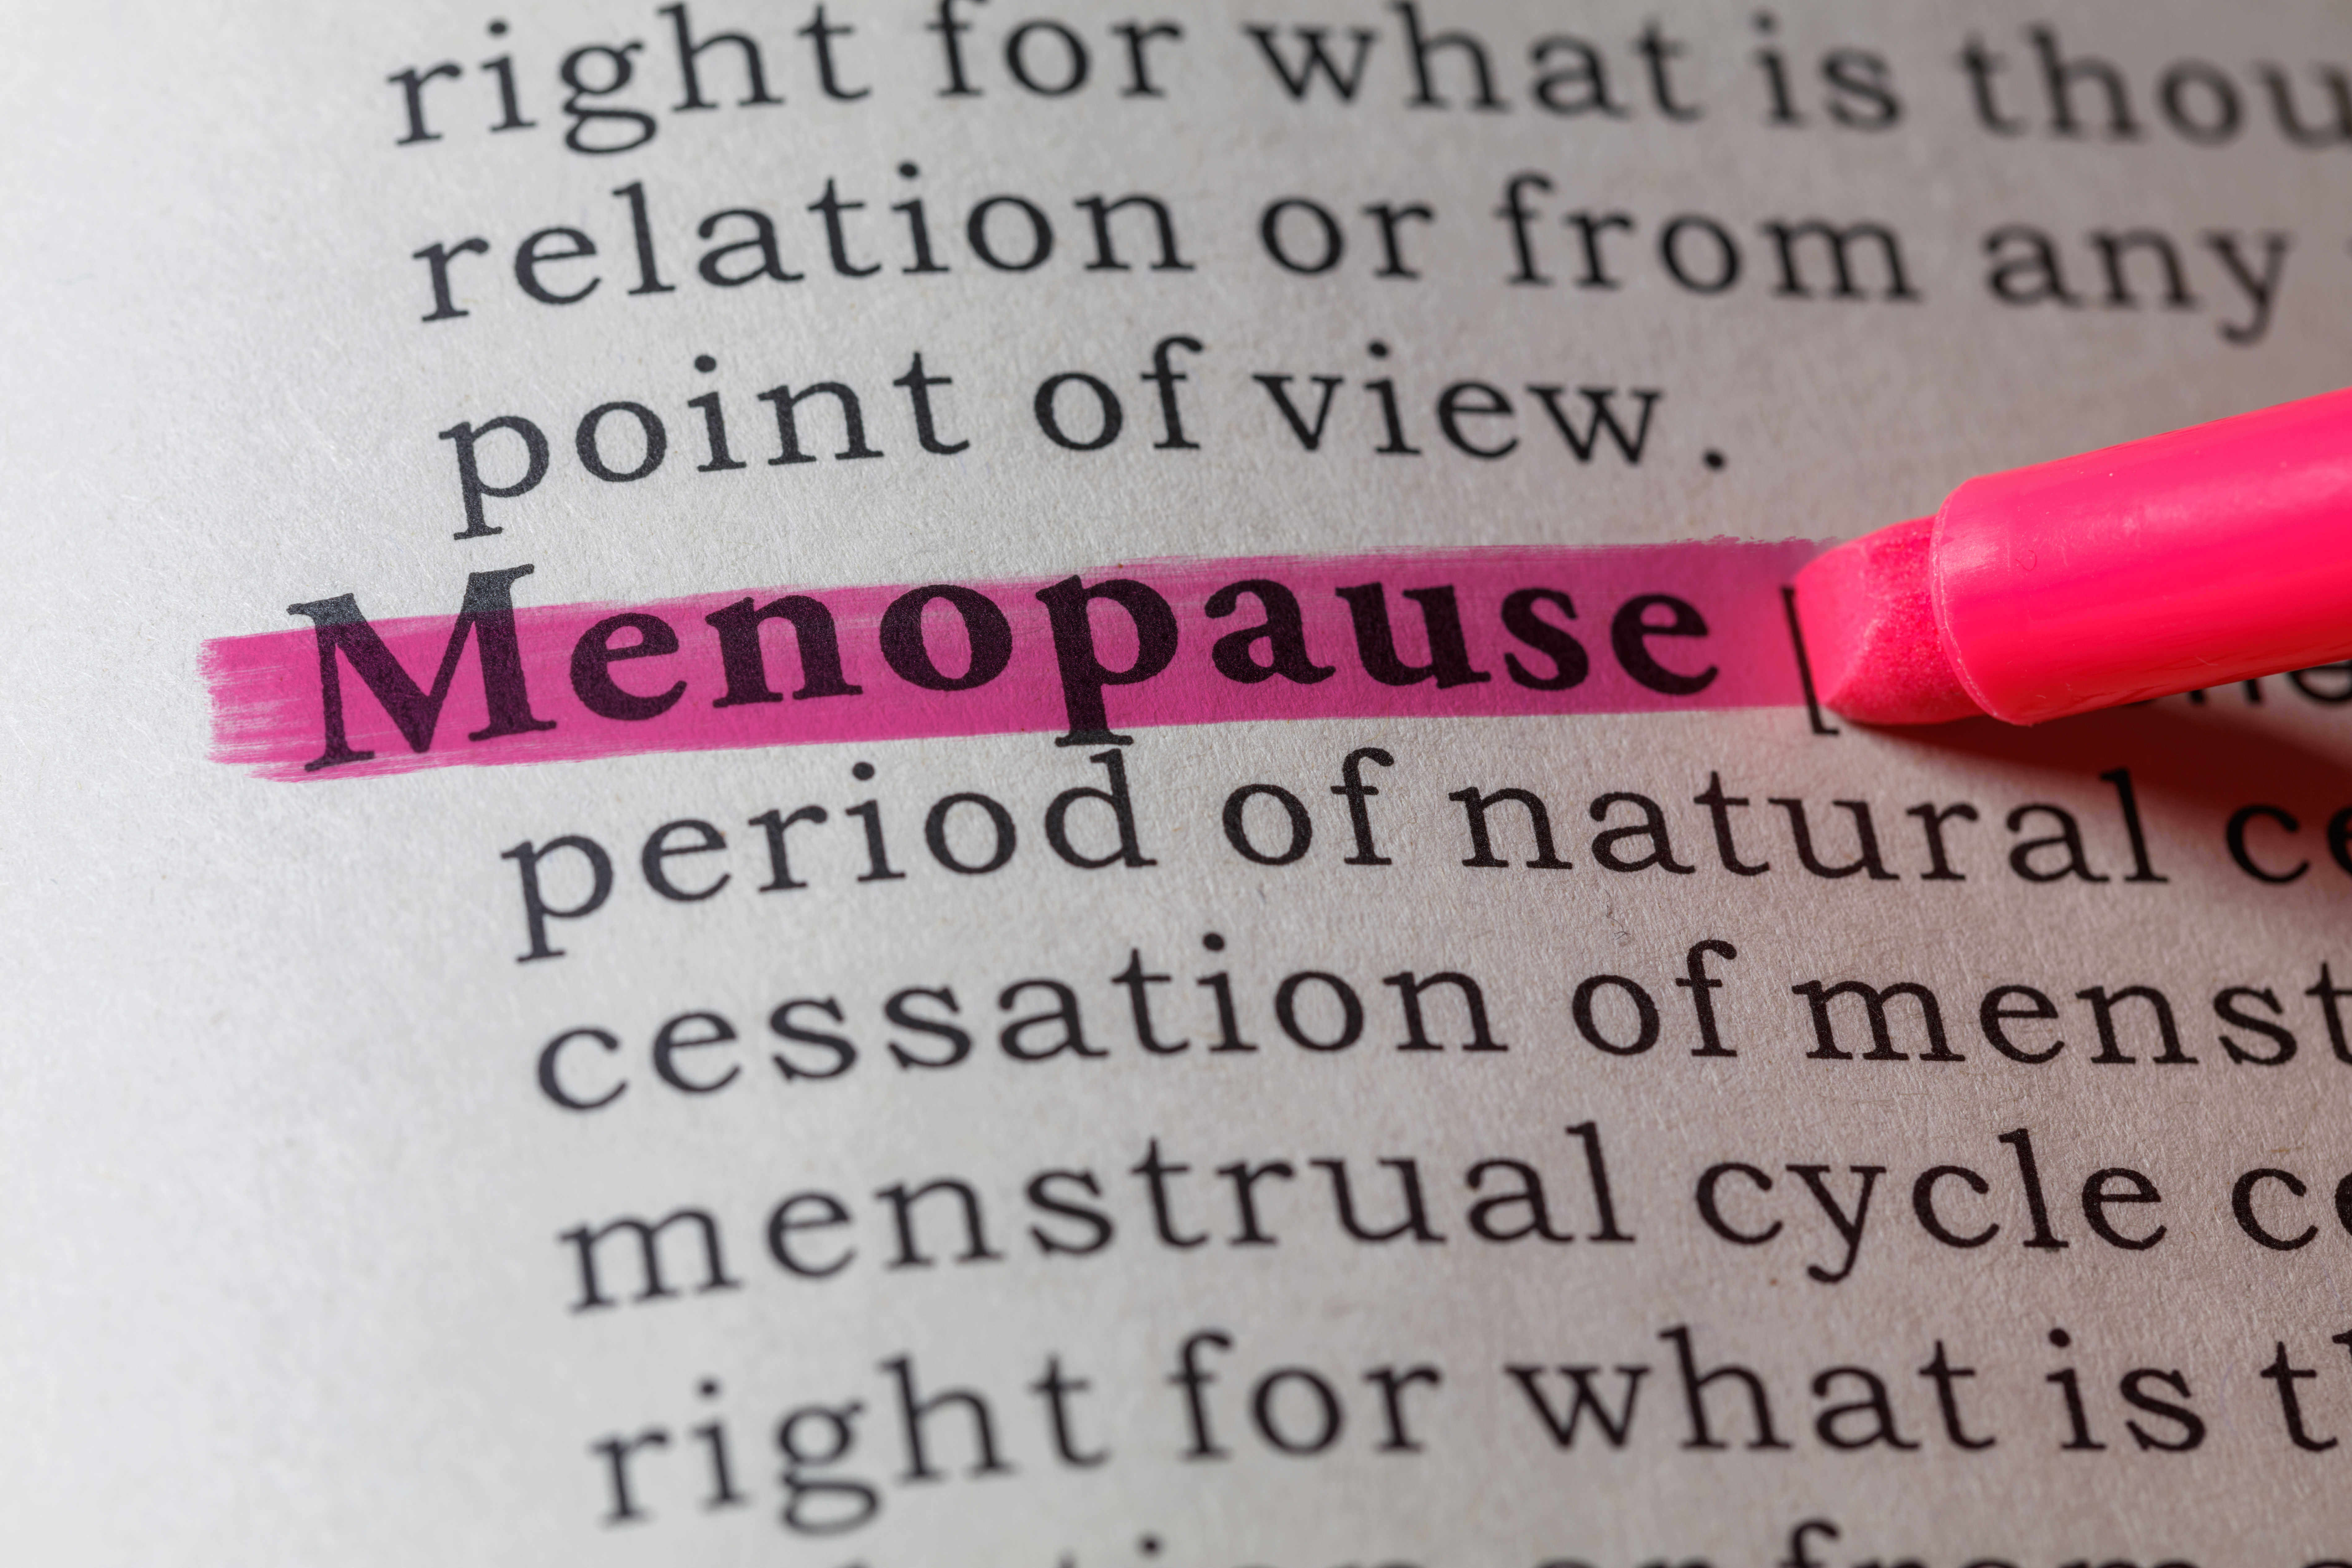 treatments for menopause